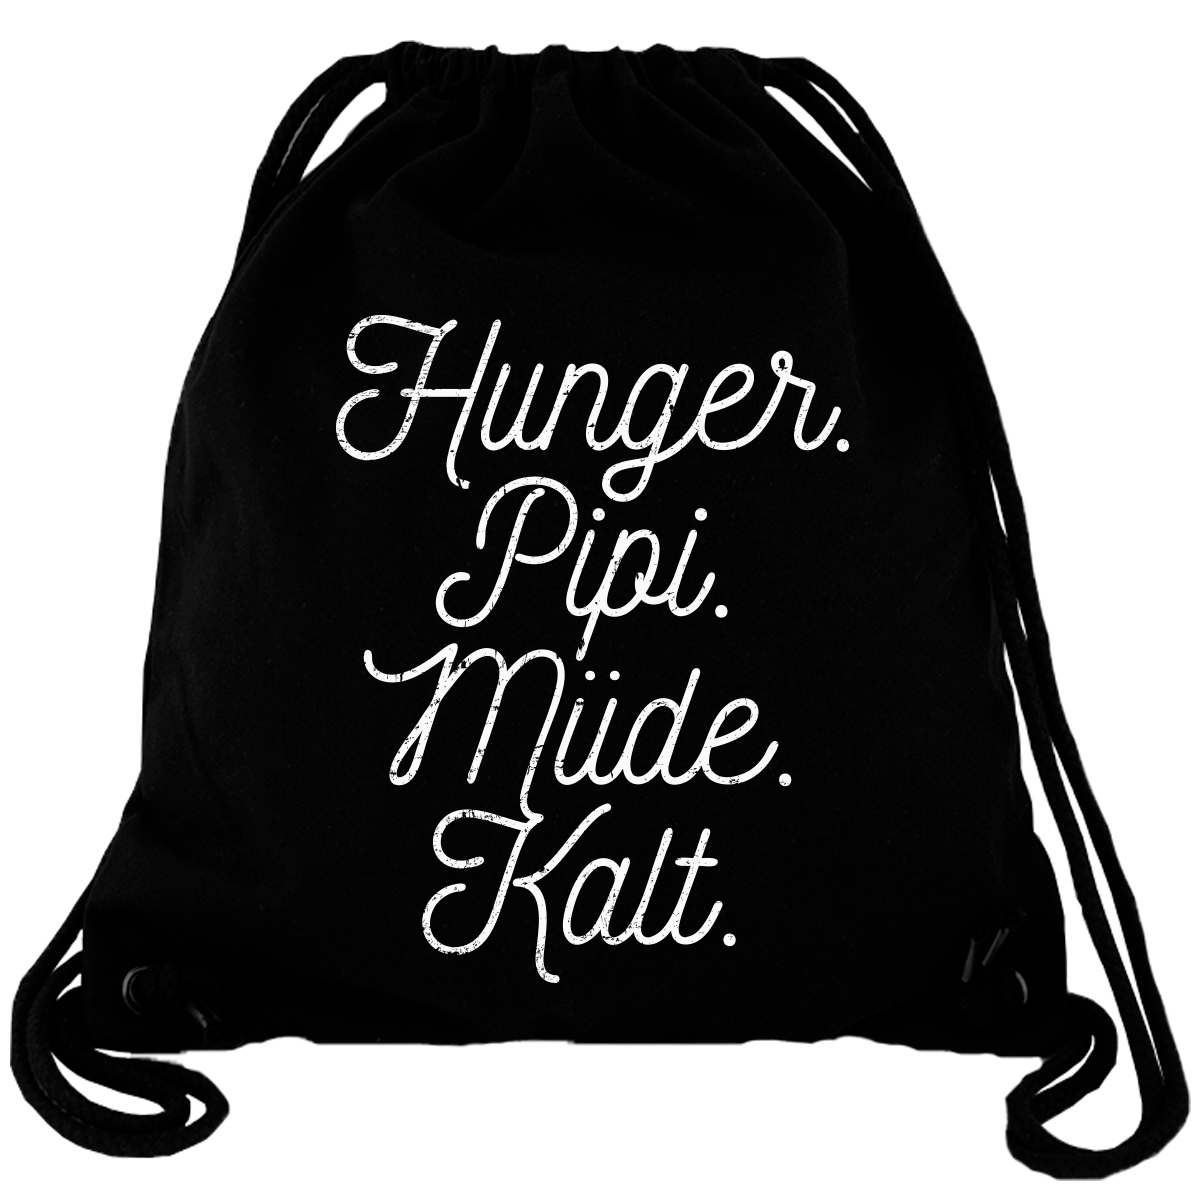 Hunger Pipi Müde Kalt - Gym Bag Turnbeutel